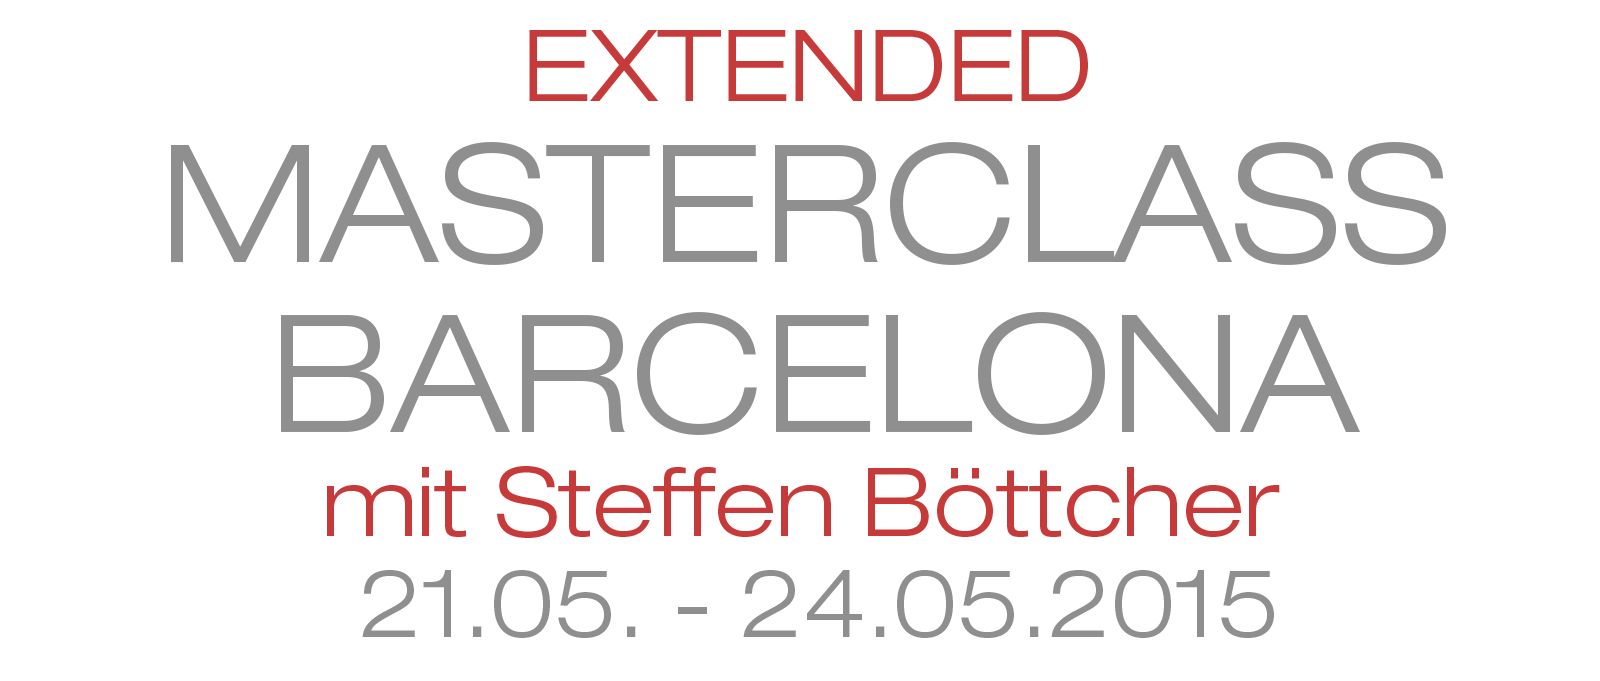 Extended Masterclass Barcelona 2015